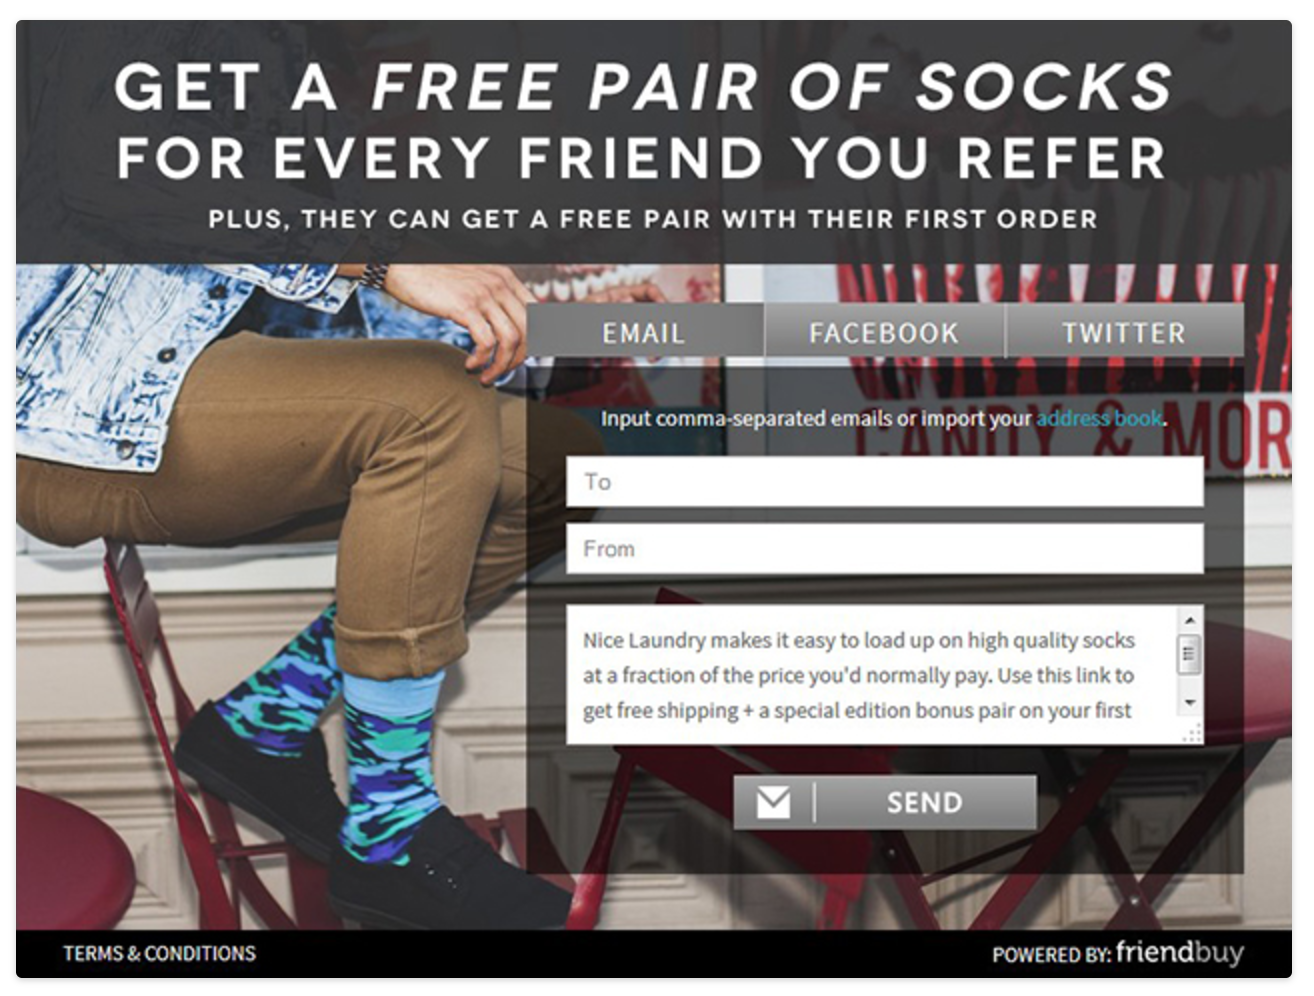 Nice Laundry referral program